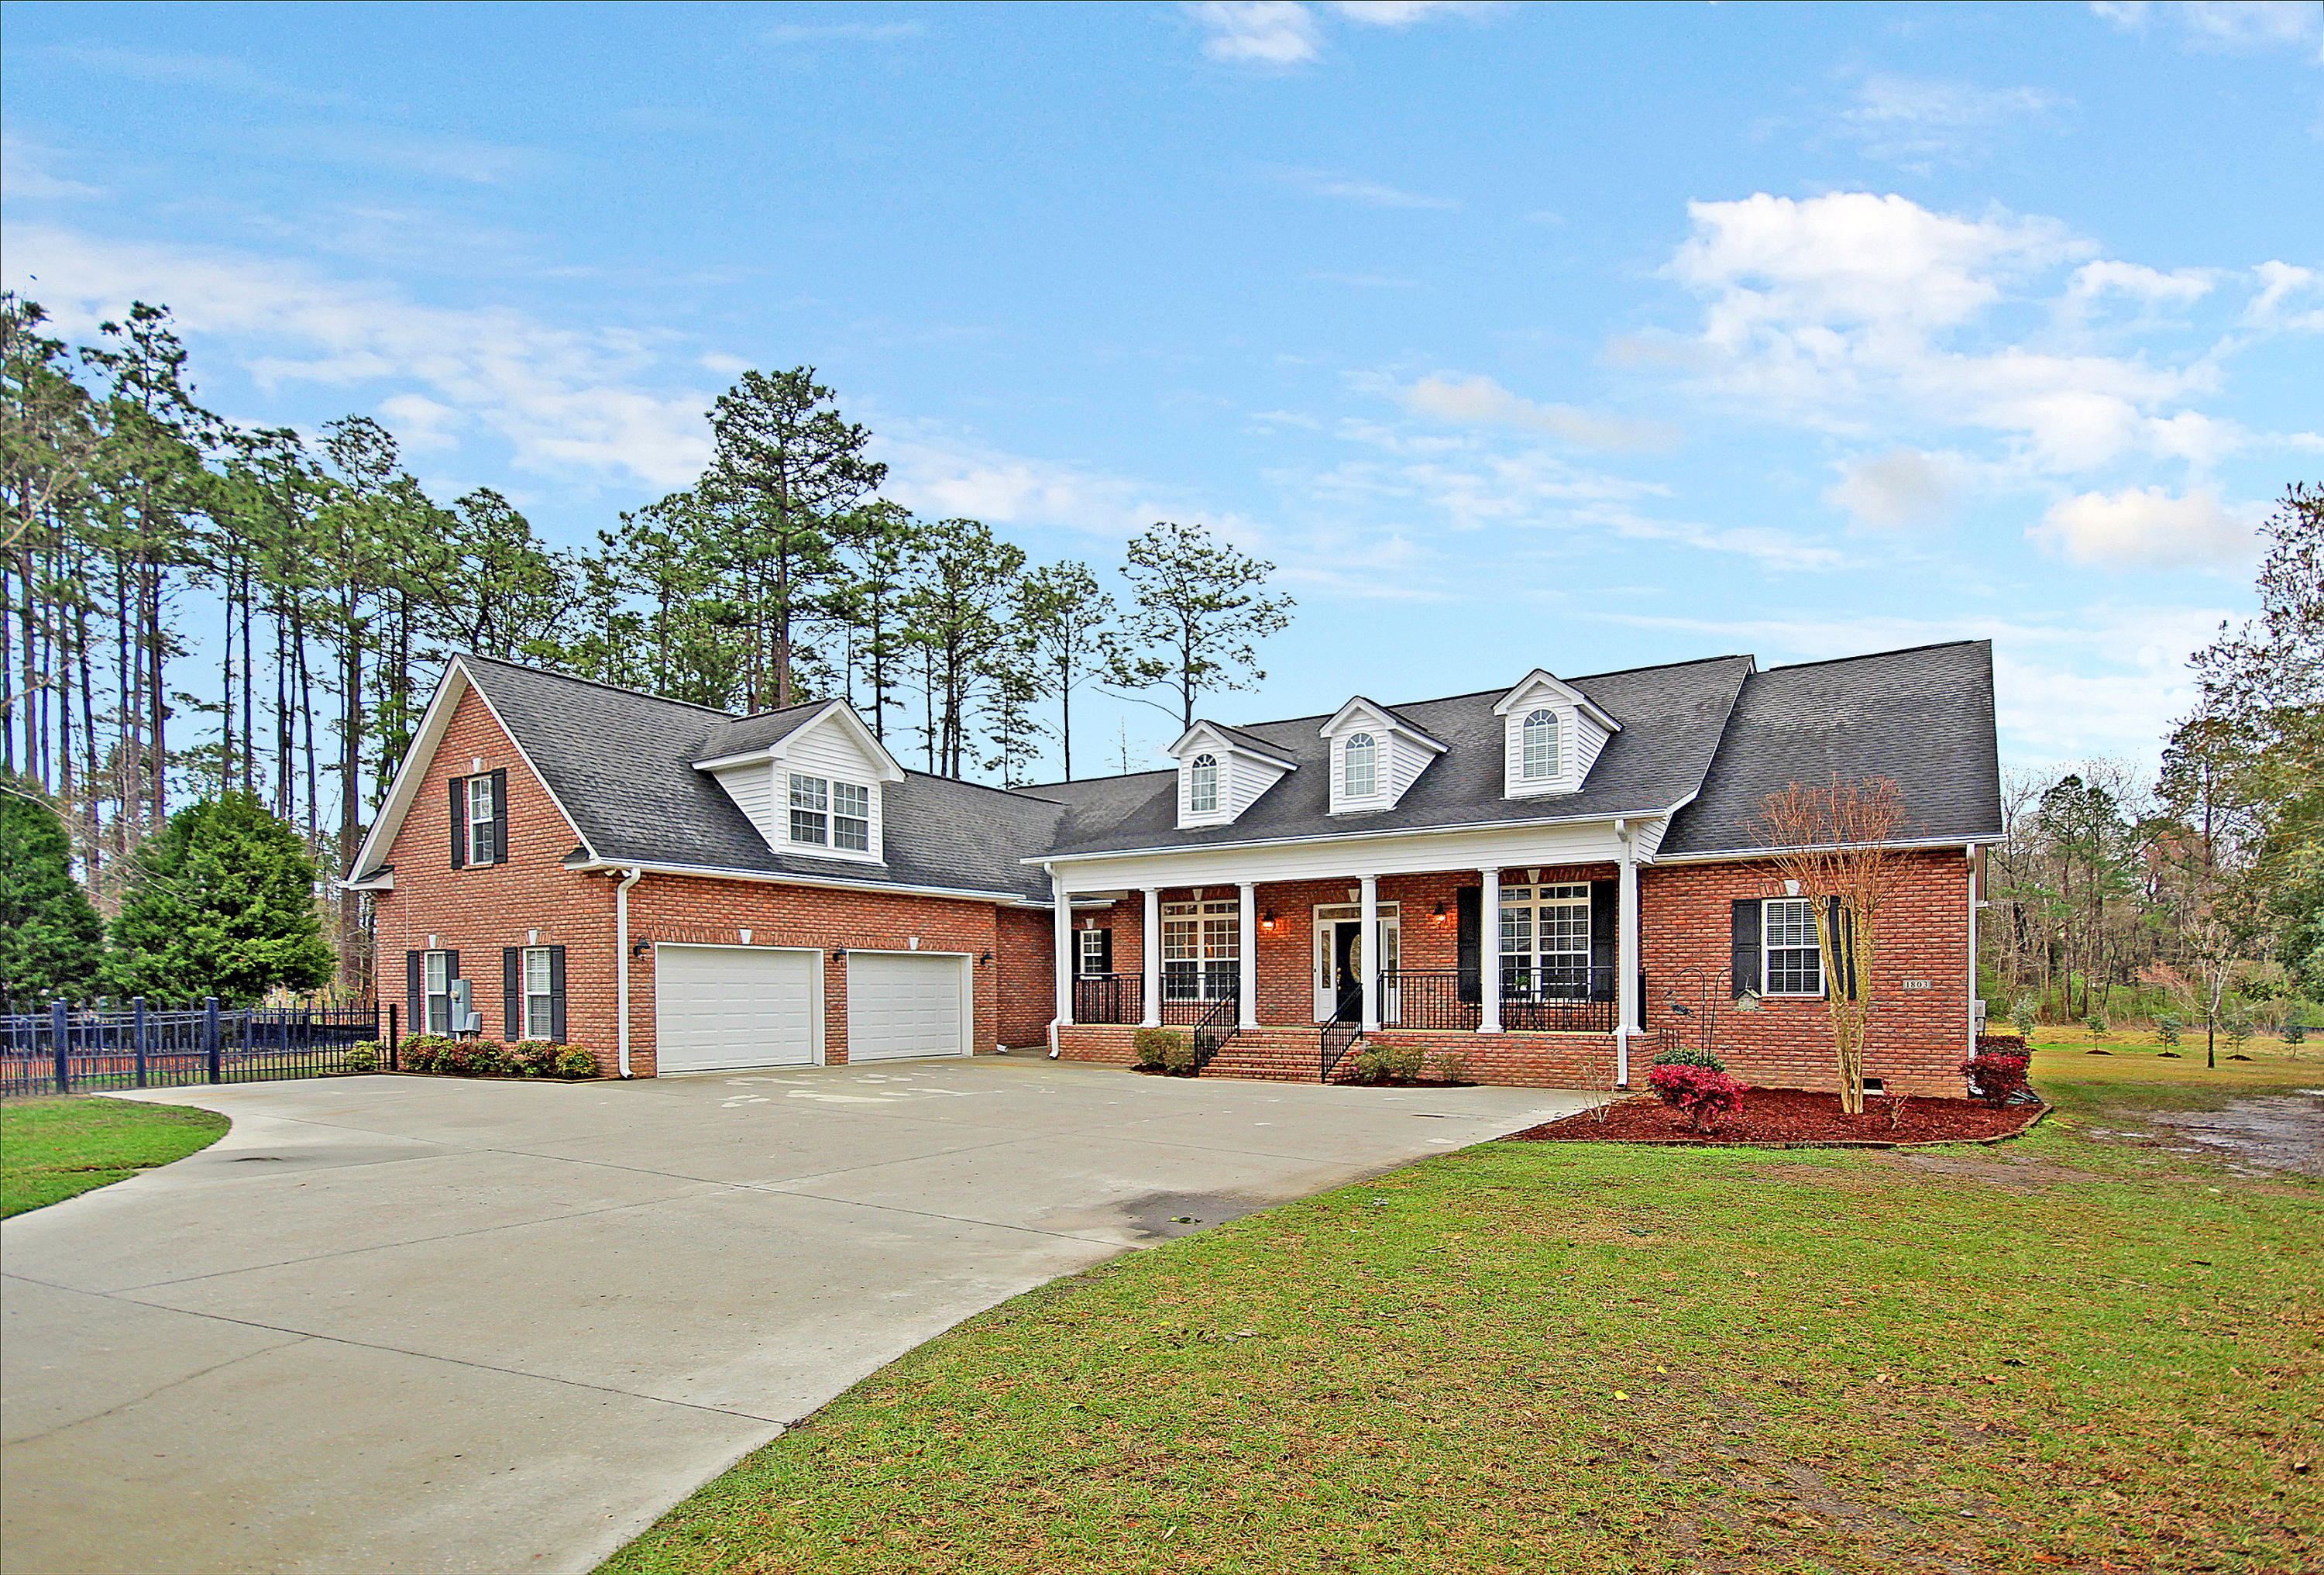 Pine Forest Country Club Homes For Sale - 1803 Congressional, Summerville, SC - 18